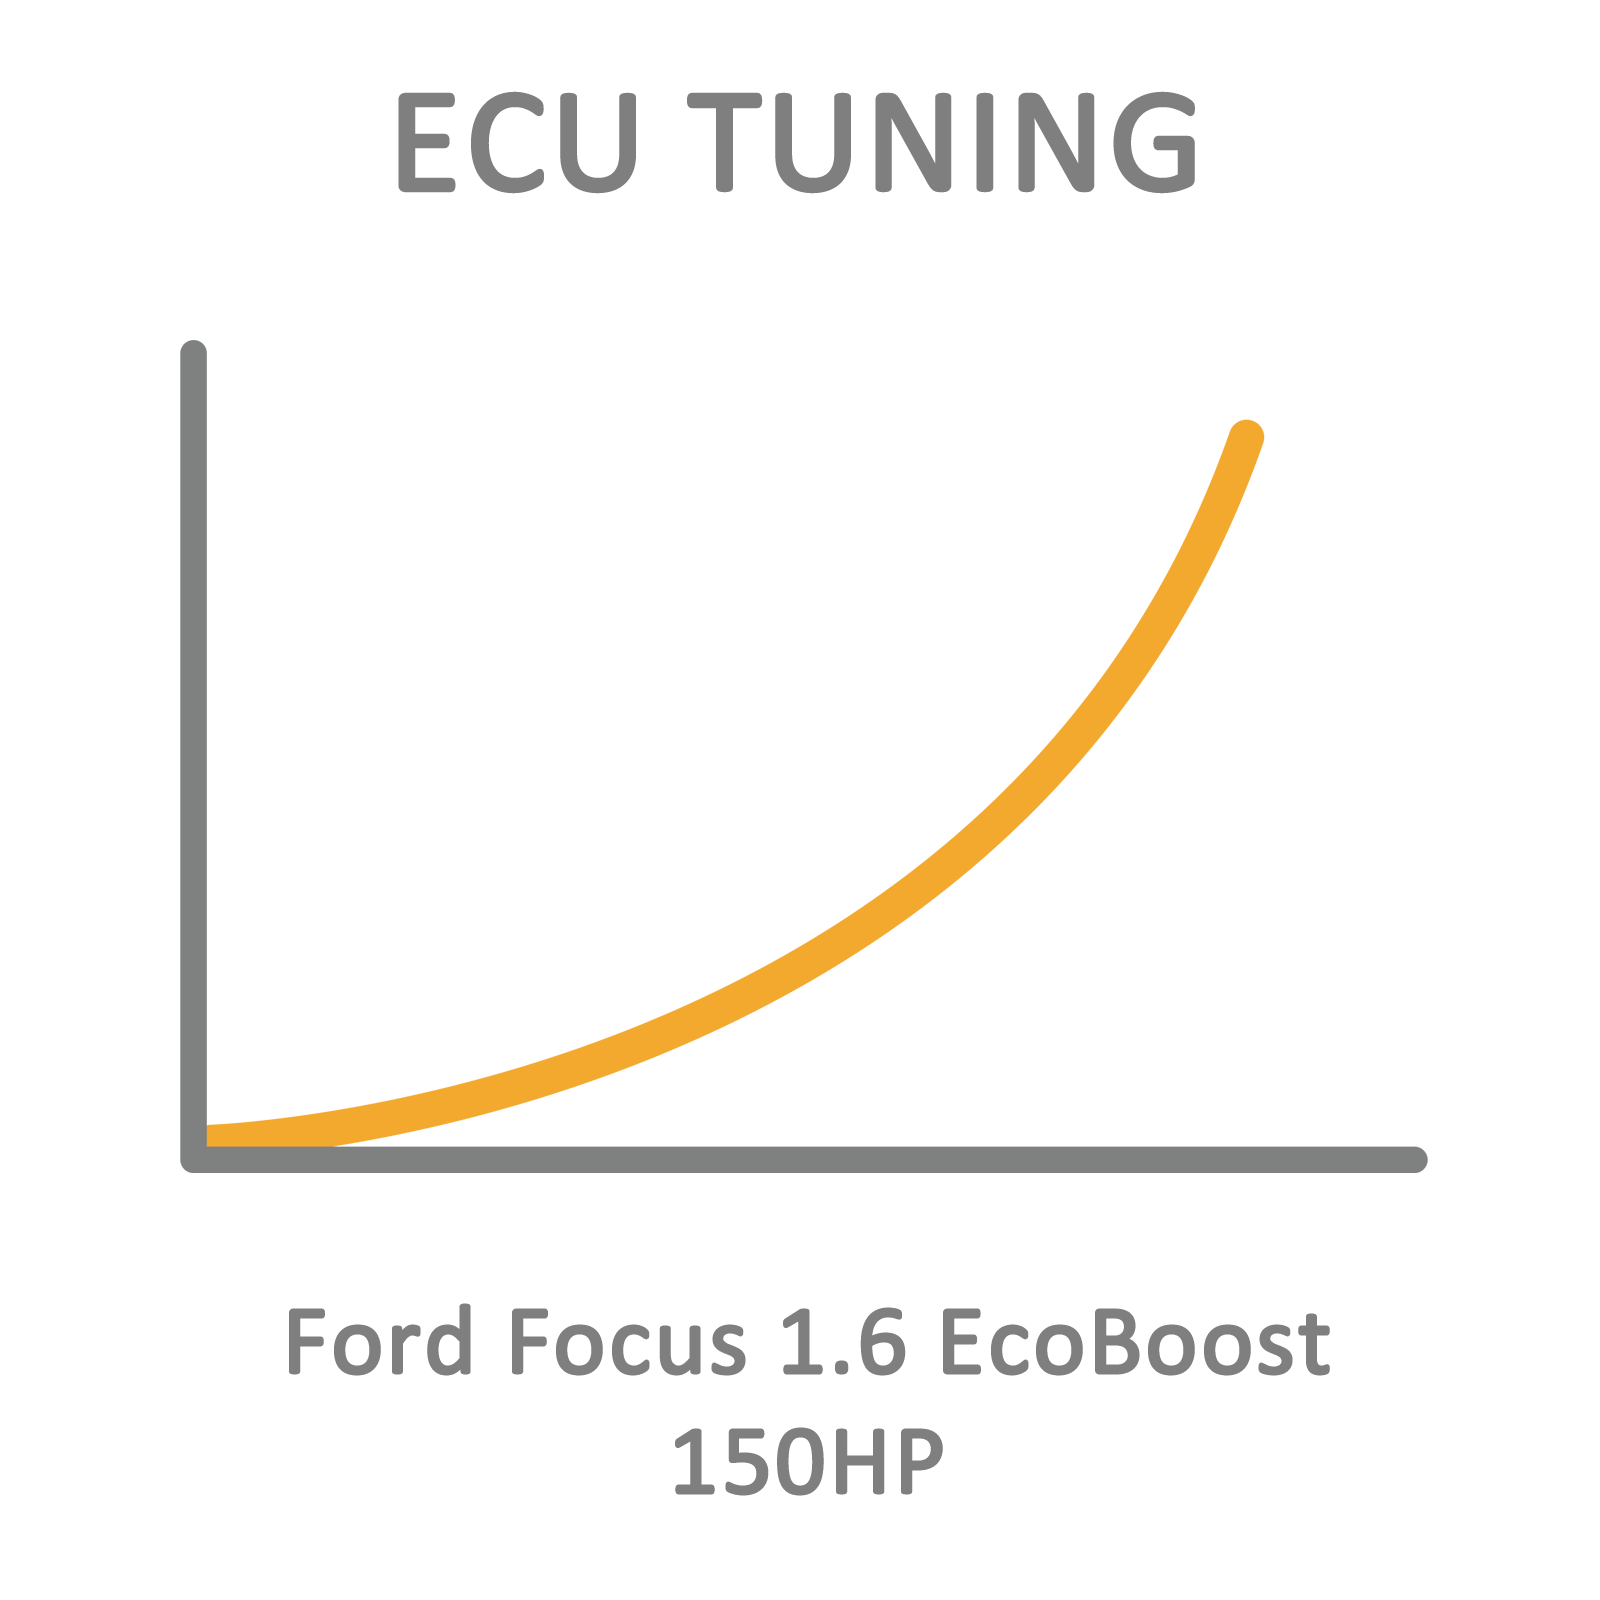 Ford Focus 1.6 EcoBoost 150HP ECU Tuning Remapping Programming